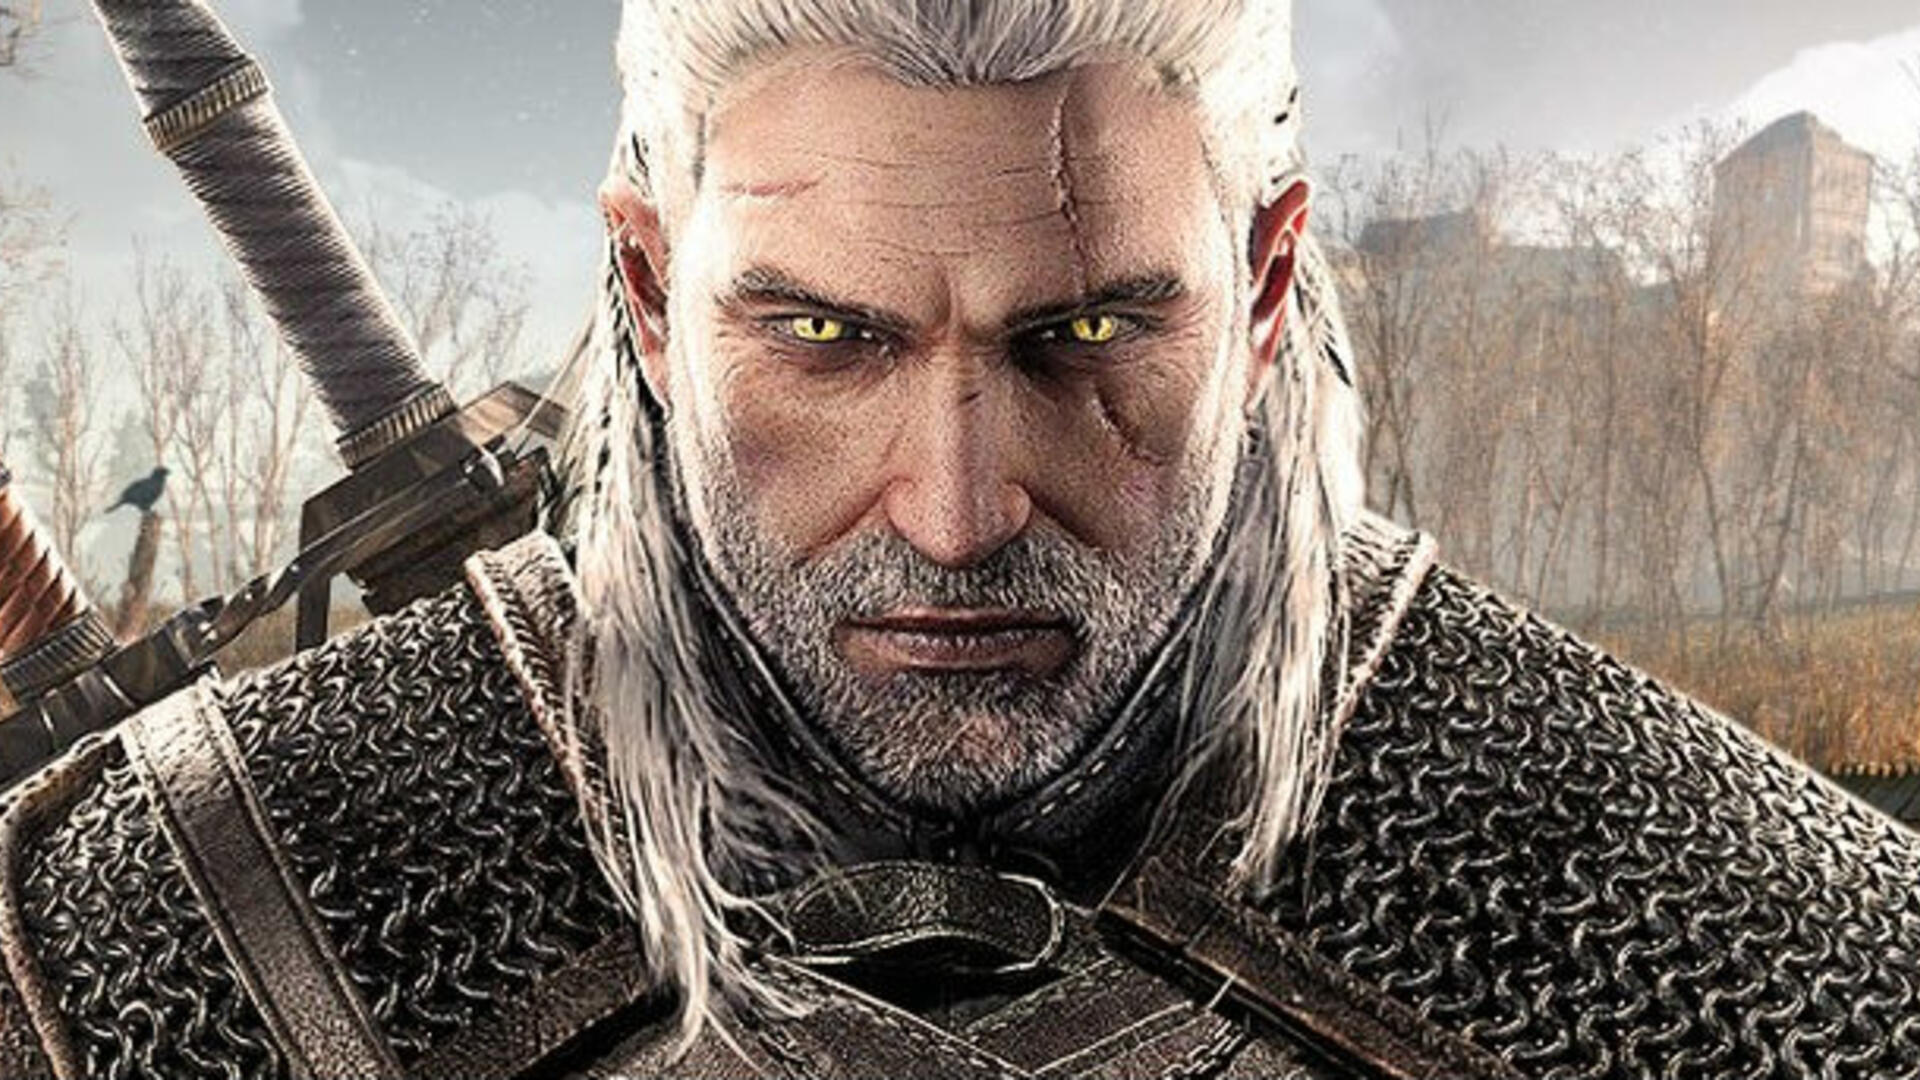 The Witcher 3's 4K Upgrade May Be Coming Soon to the PlayStation 4 Pro